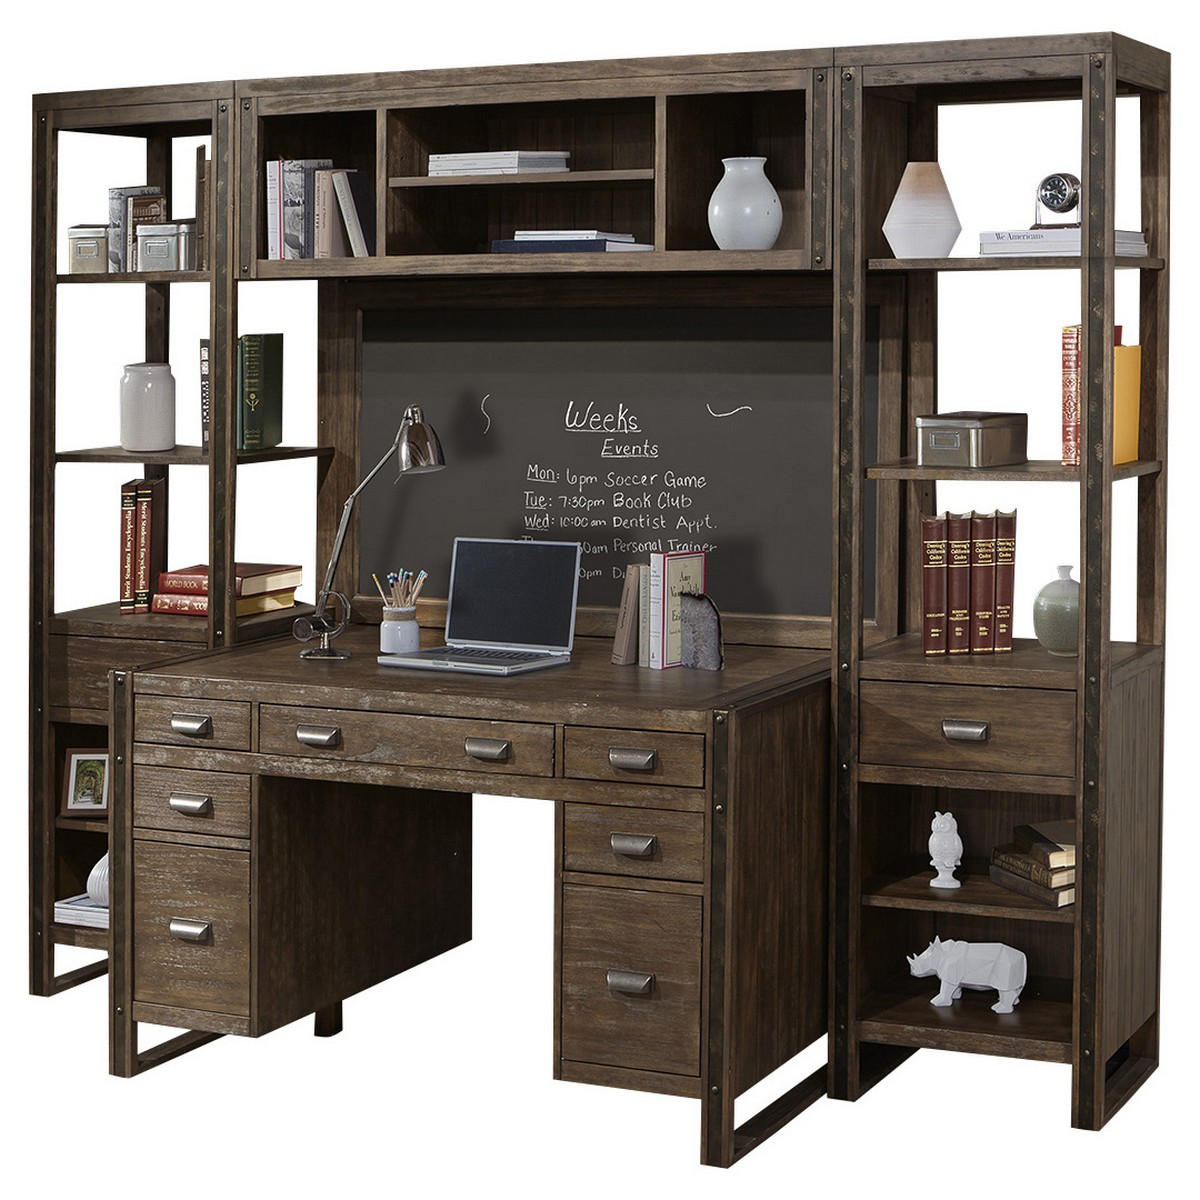 Parker House Brooklyn Home Office Set 2 - Antique Burnished Pine